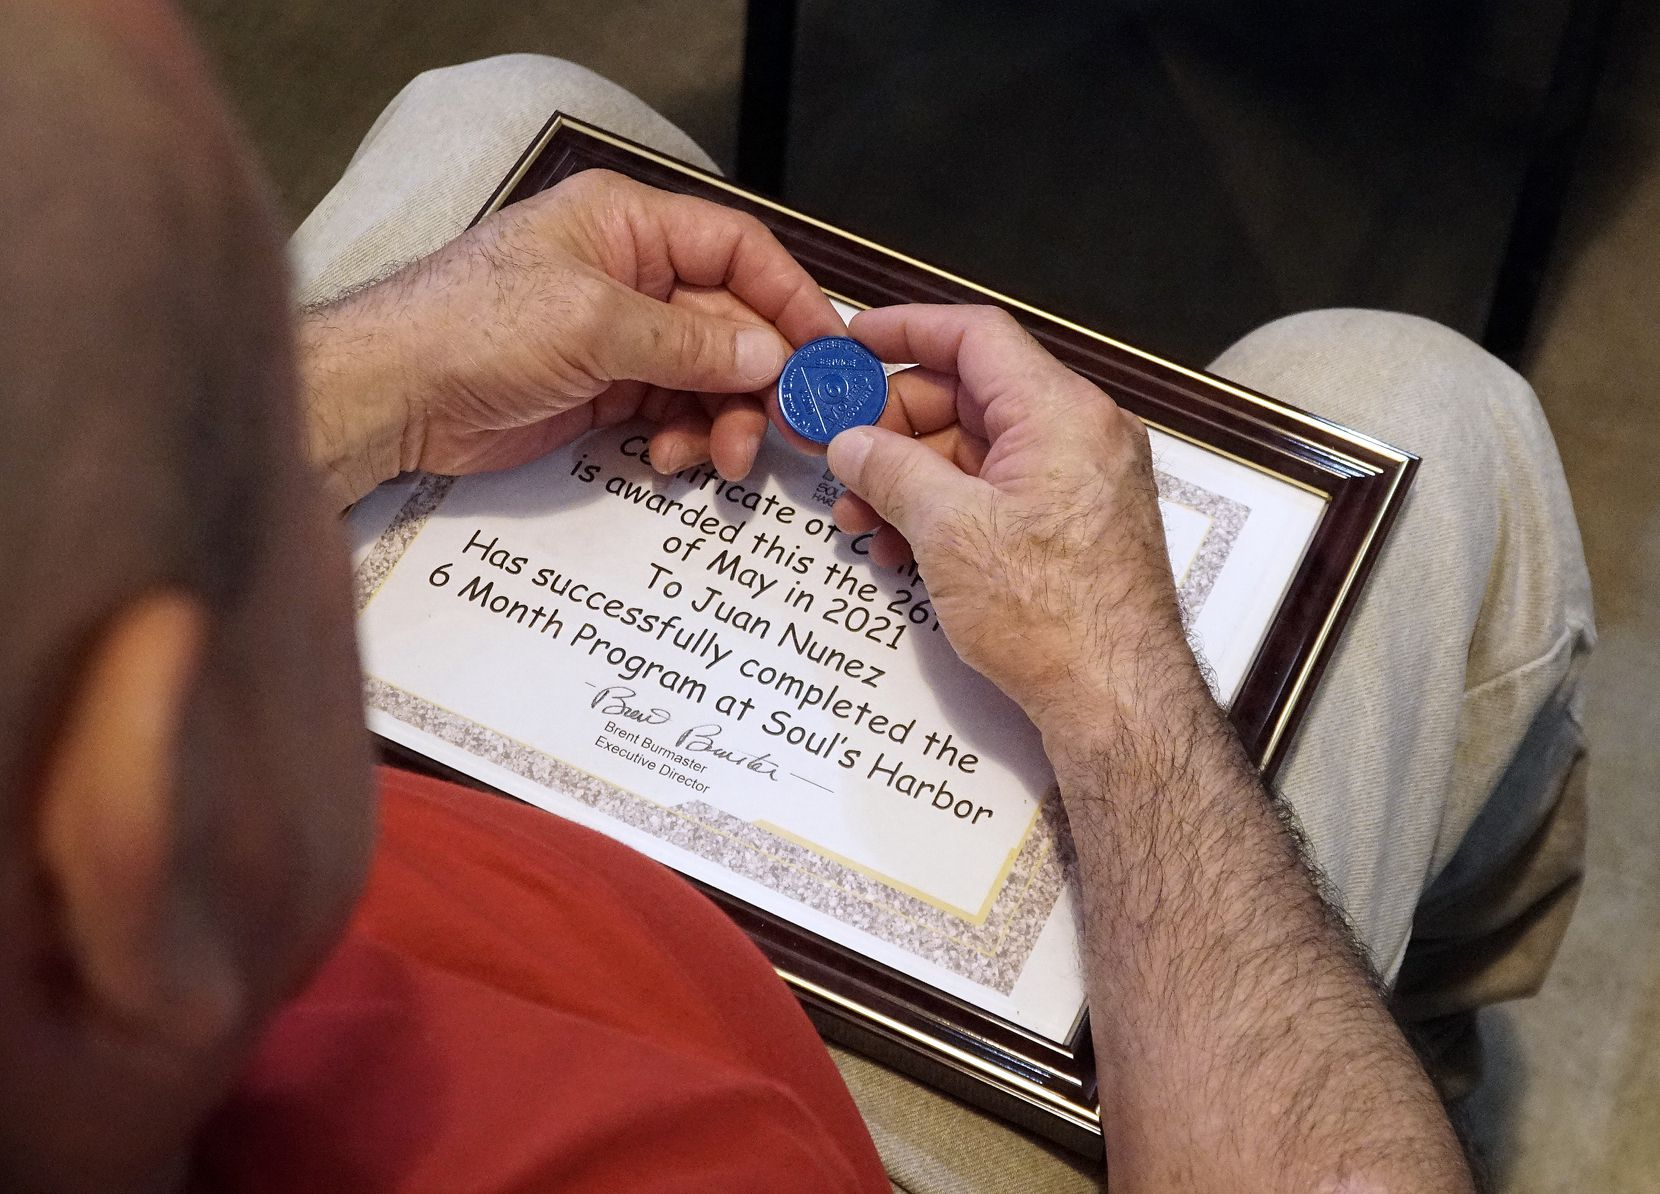 Juan Nunez holds his six-month sobriety chip at Soul's Harbor.